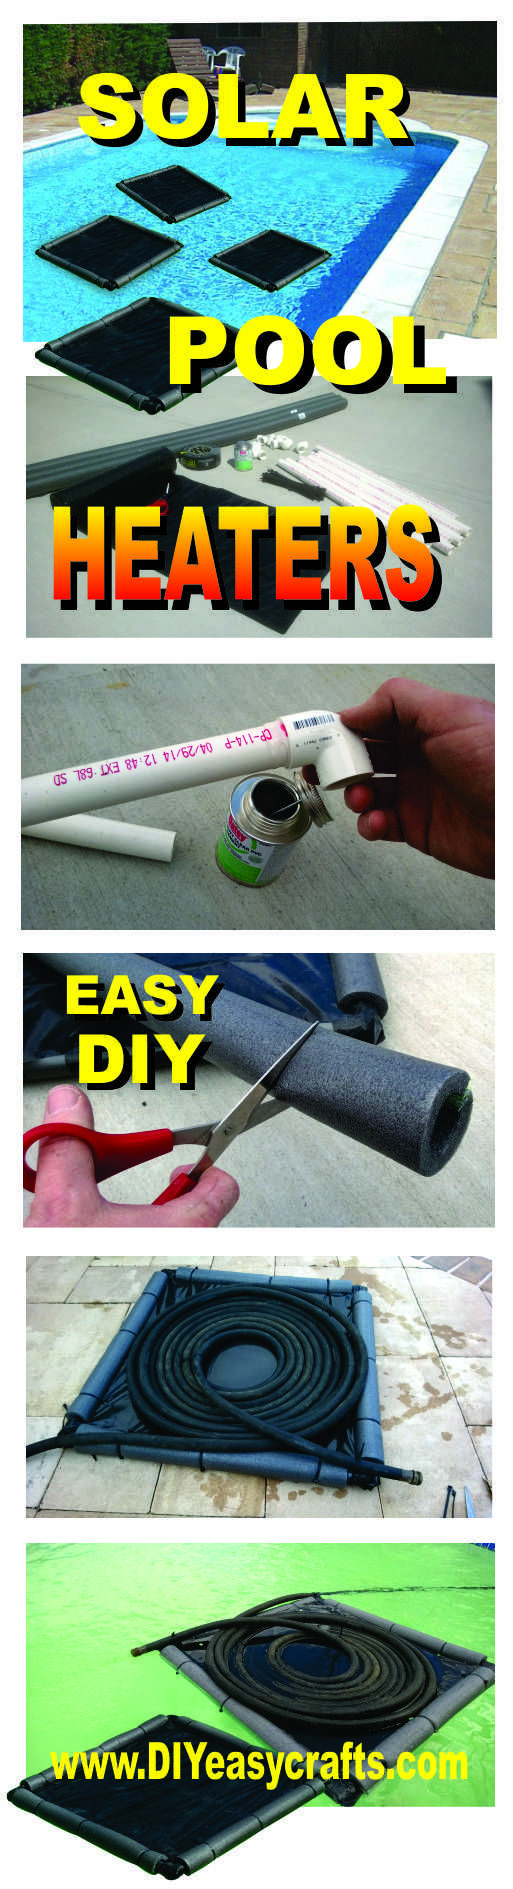 Duct Tape Zwembad Pin Van Carole Keirouz Op Diy Pinterest Pool Heater Solar